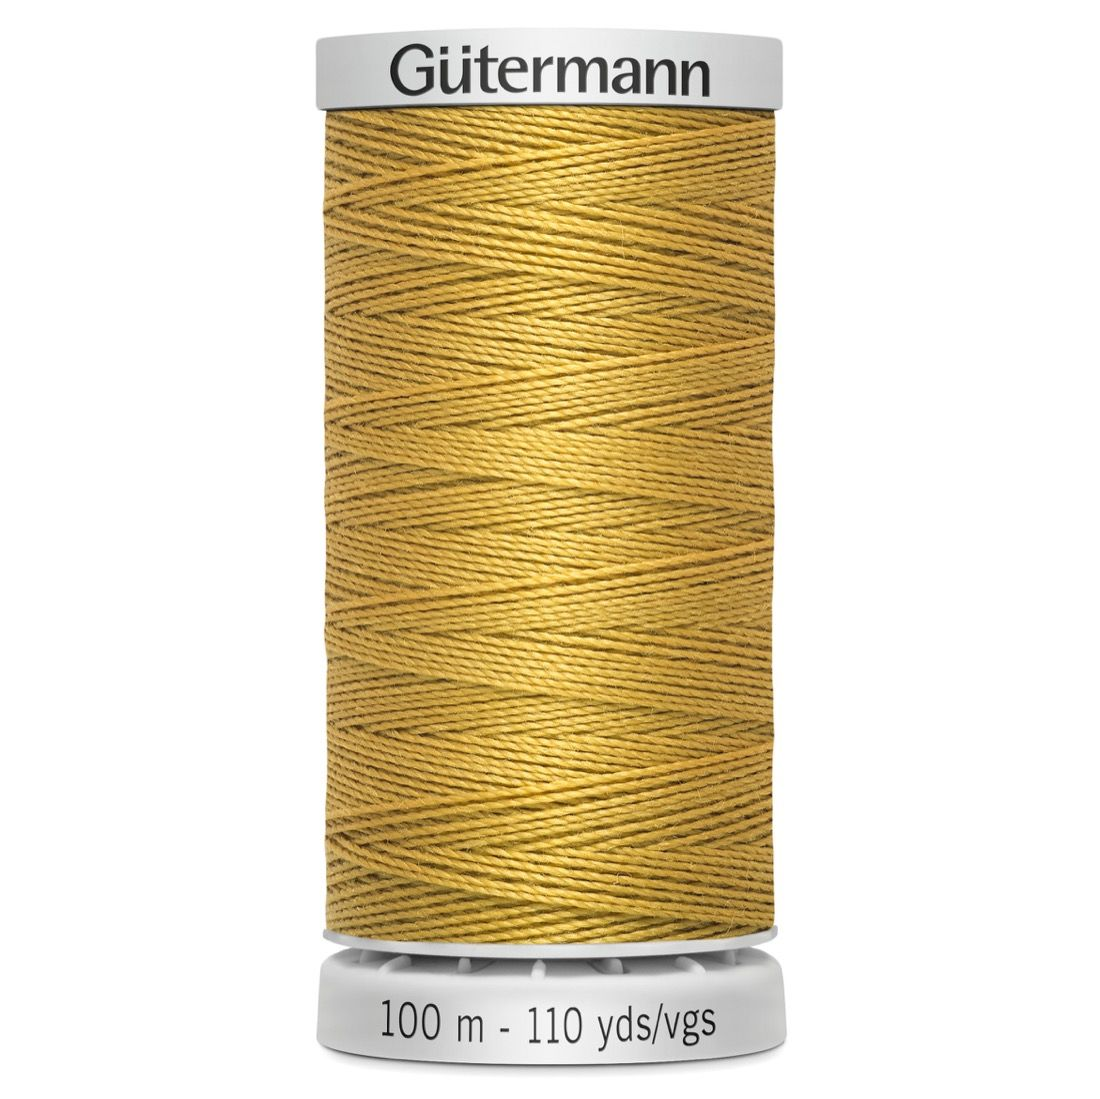 Gutermann Extra Strong Upholstery Thread - 100m - 968